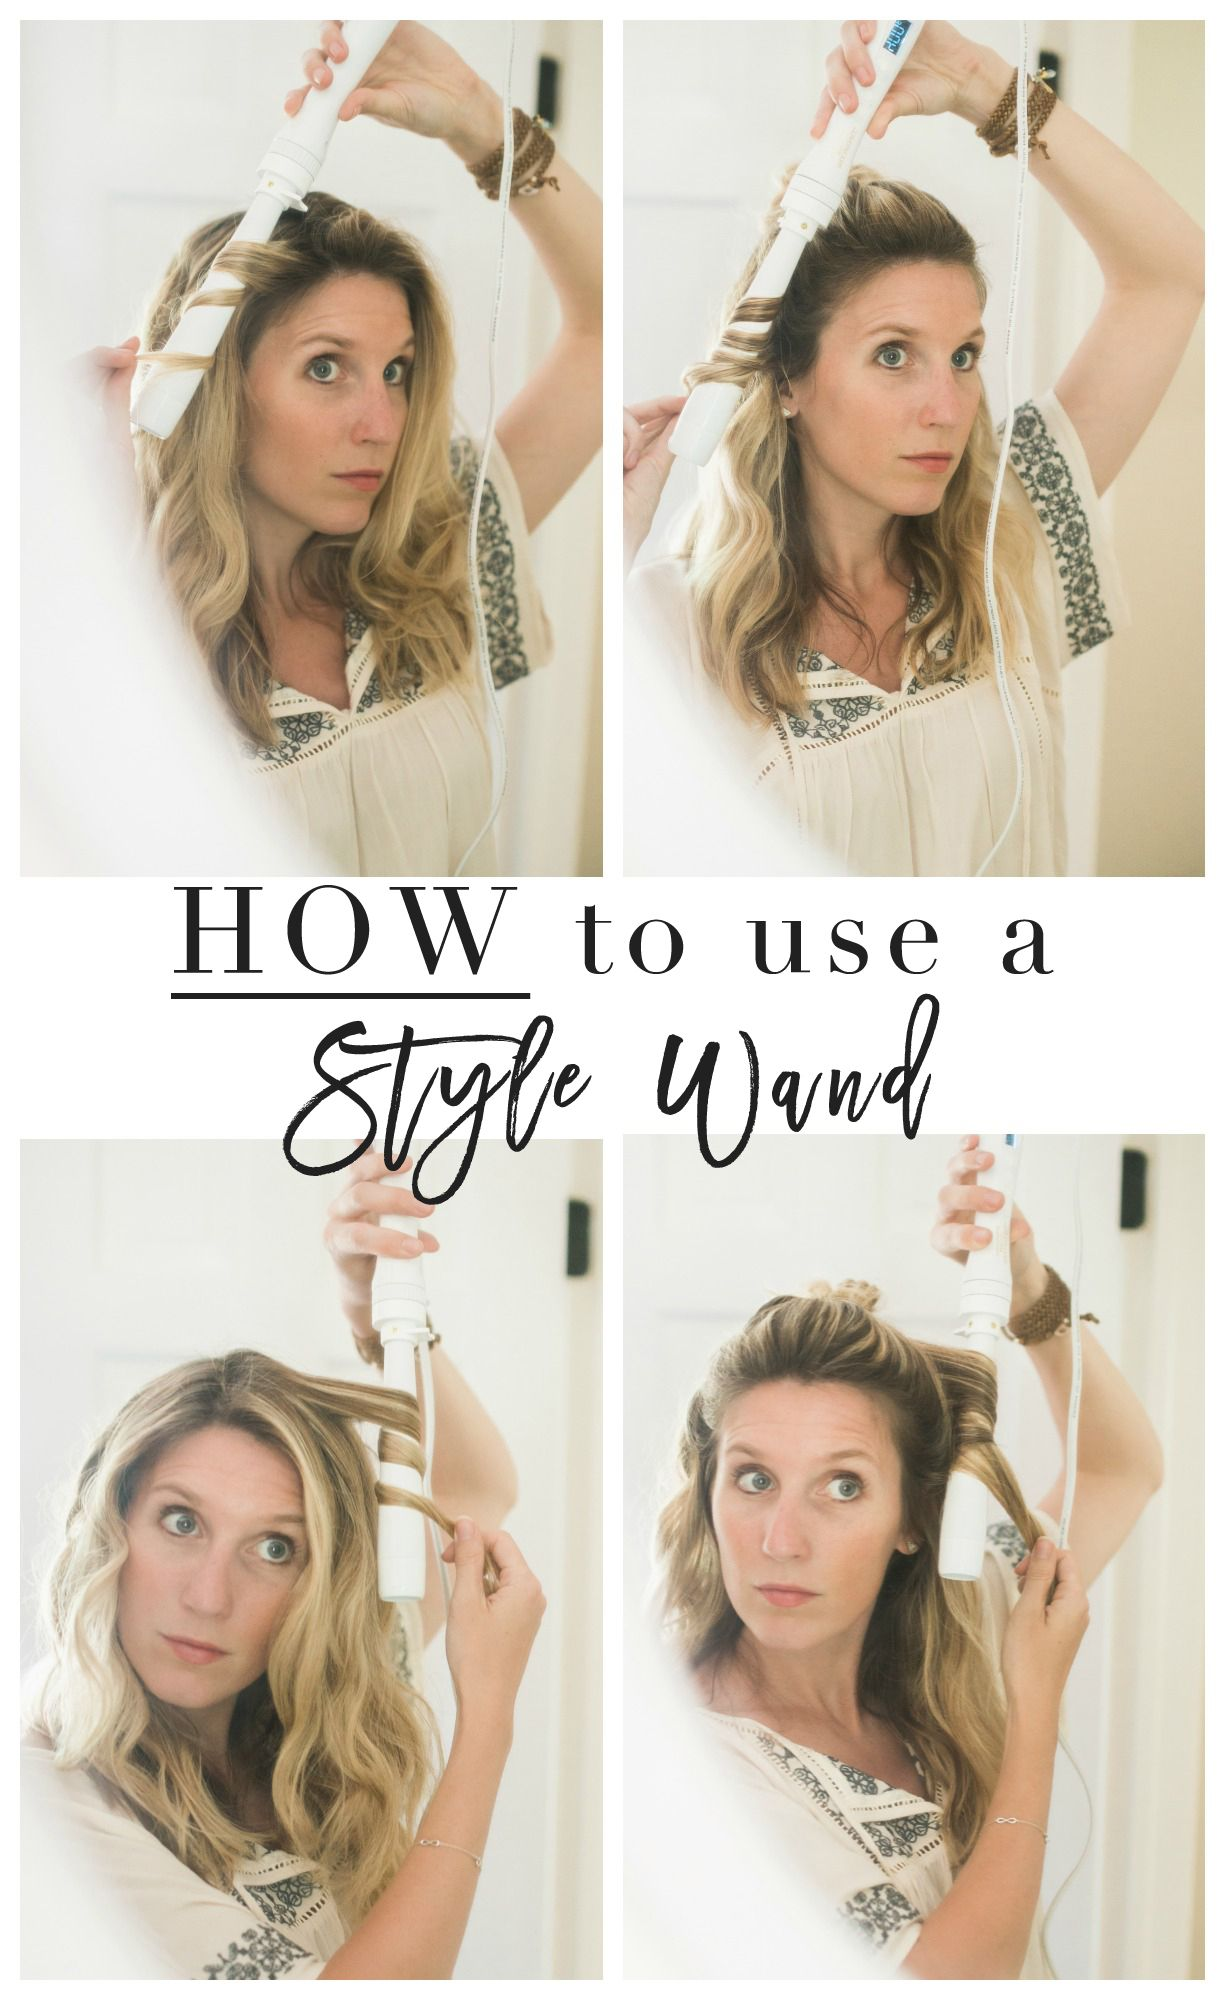 Summer hair u how to use a styling wand video easy curls wand and